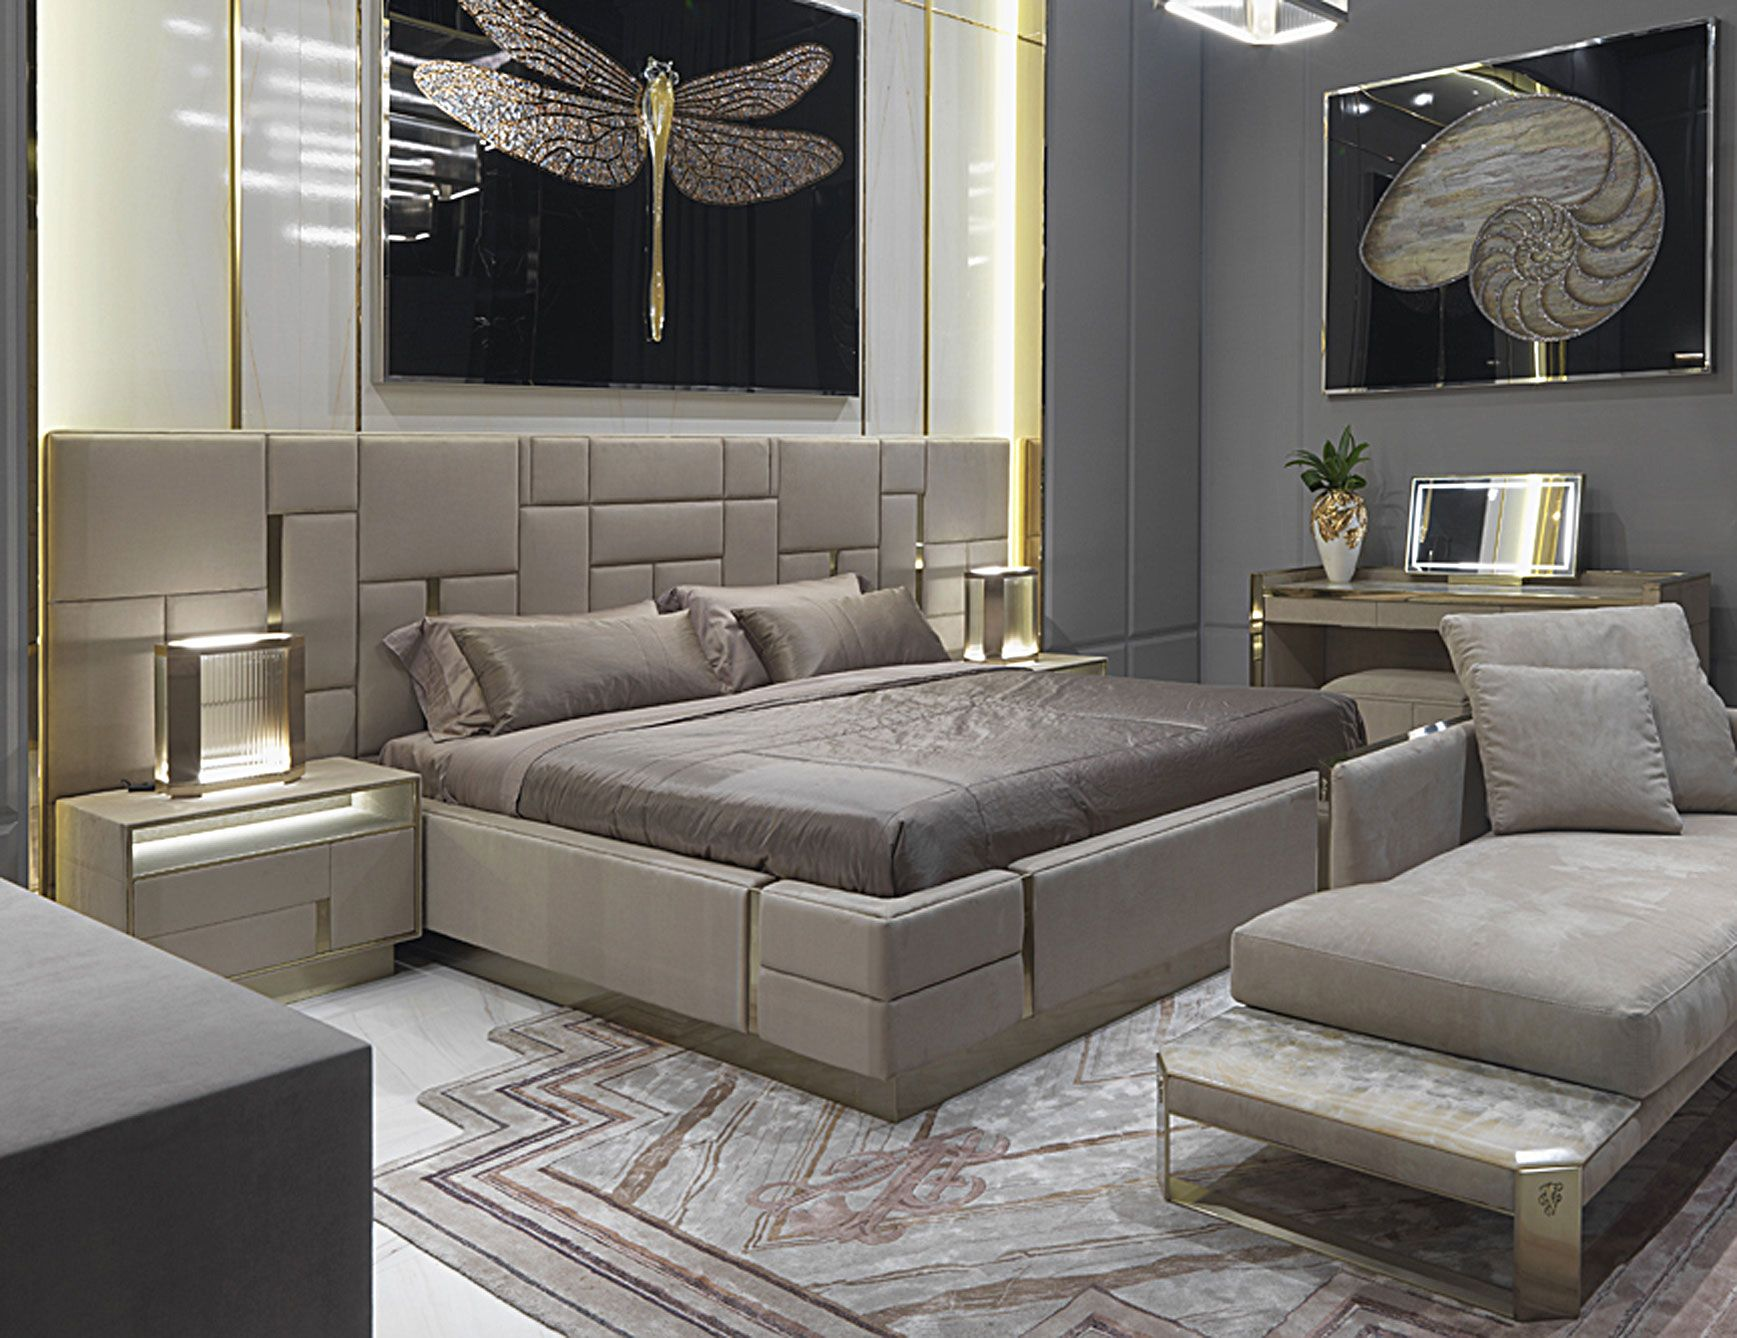 Beloved Large luxury Italian bed shown in upholstered ...